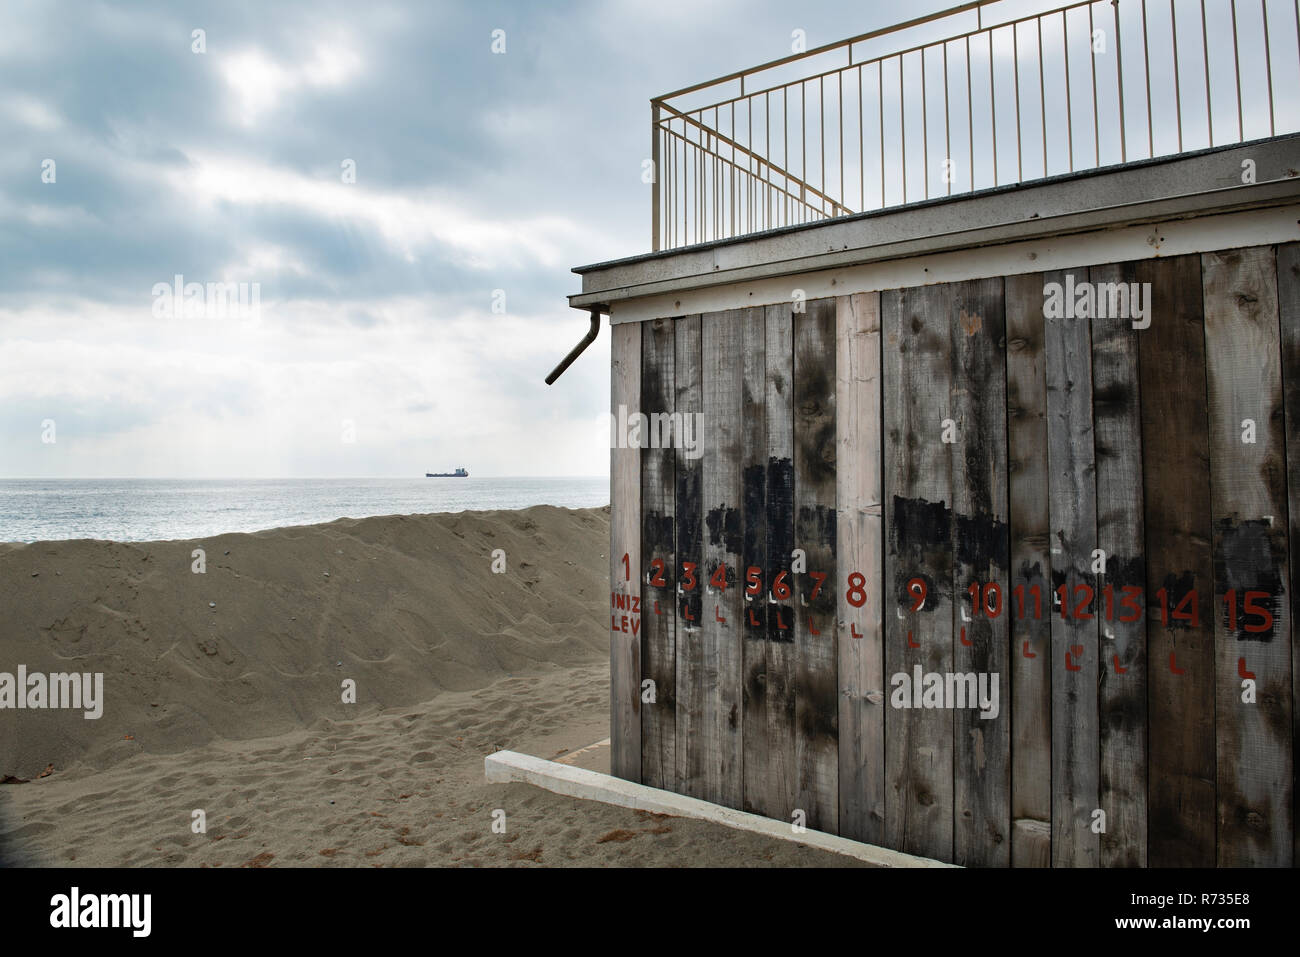 Facades covered with wooden planks to protect against winter weather and storms of the sea, in front of the building a sand dune, on the bottom an oil - Stock Image